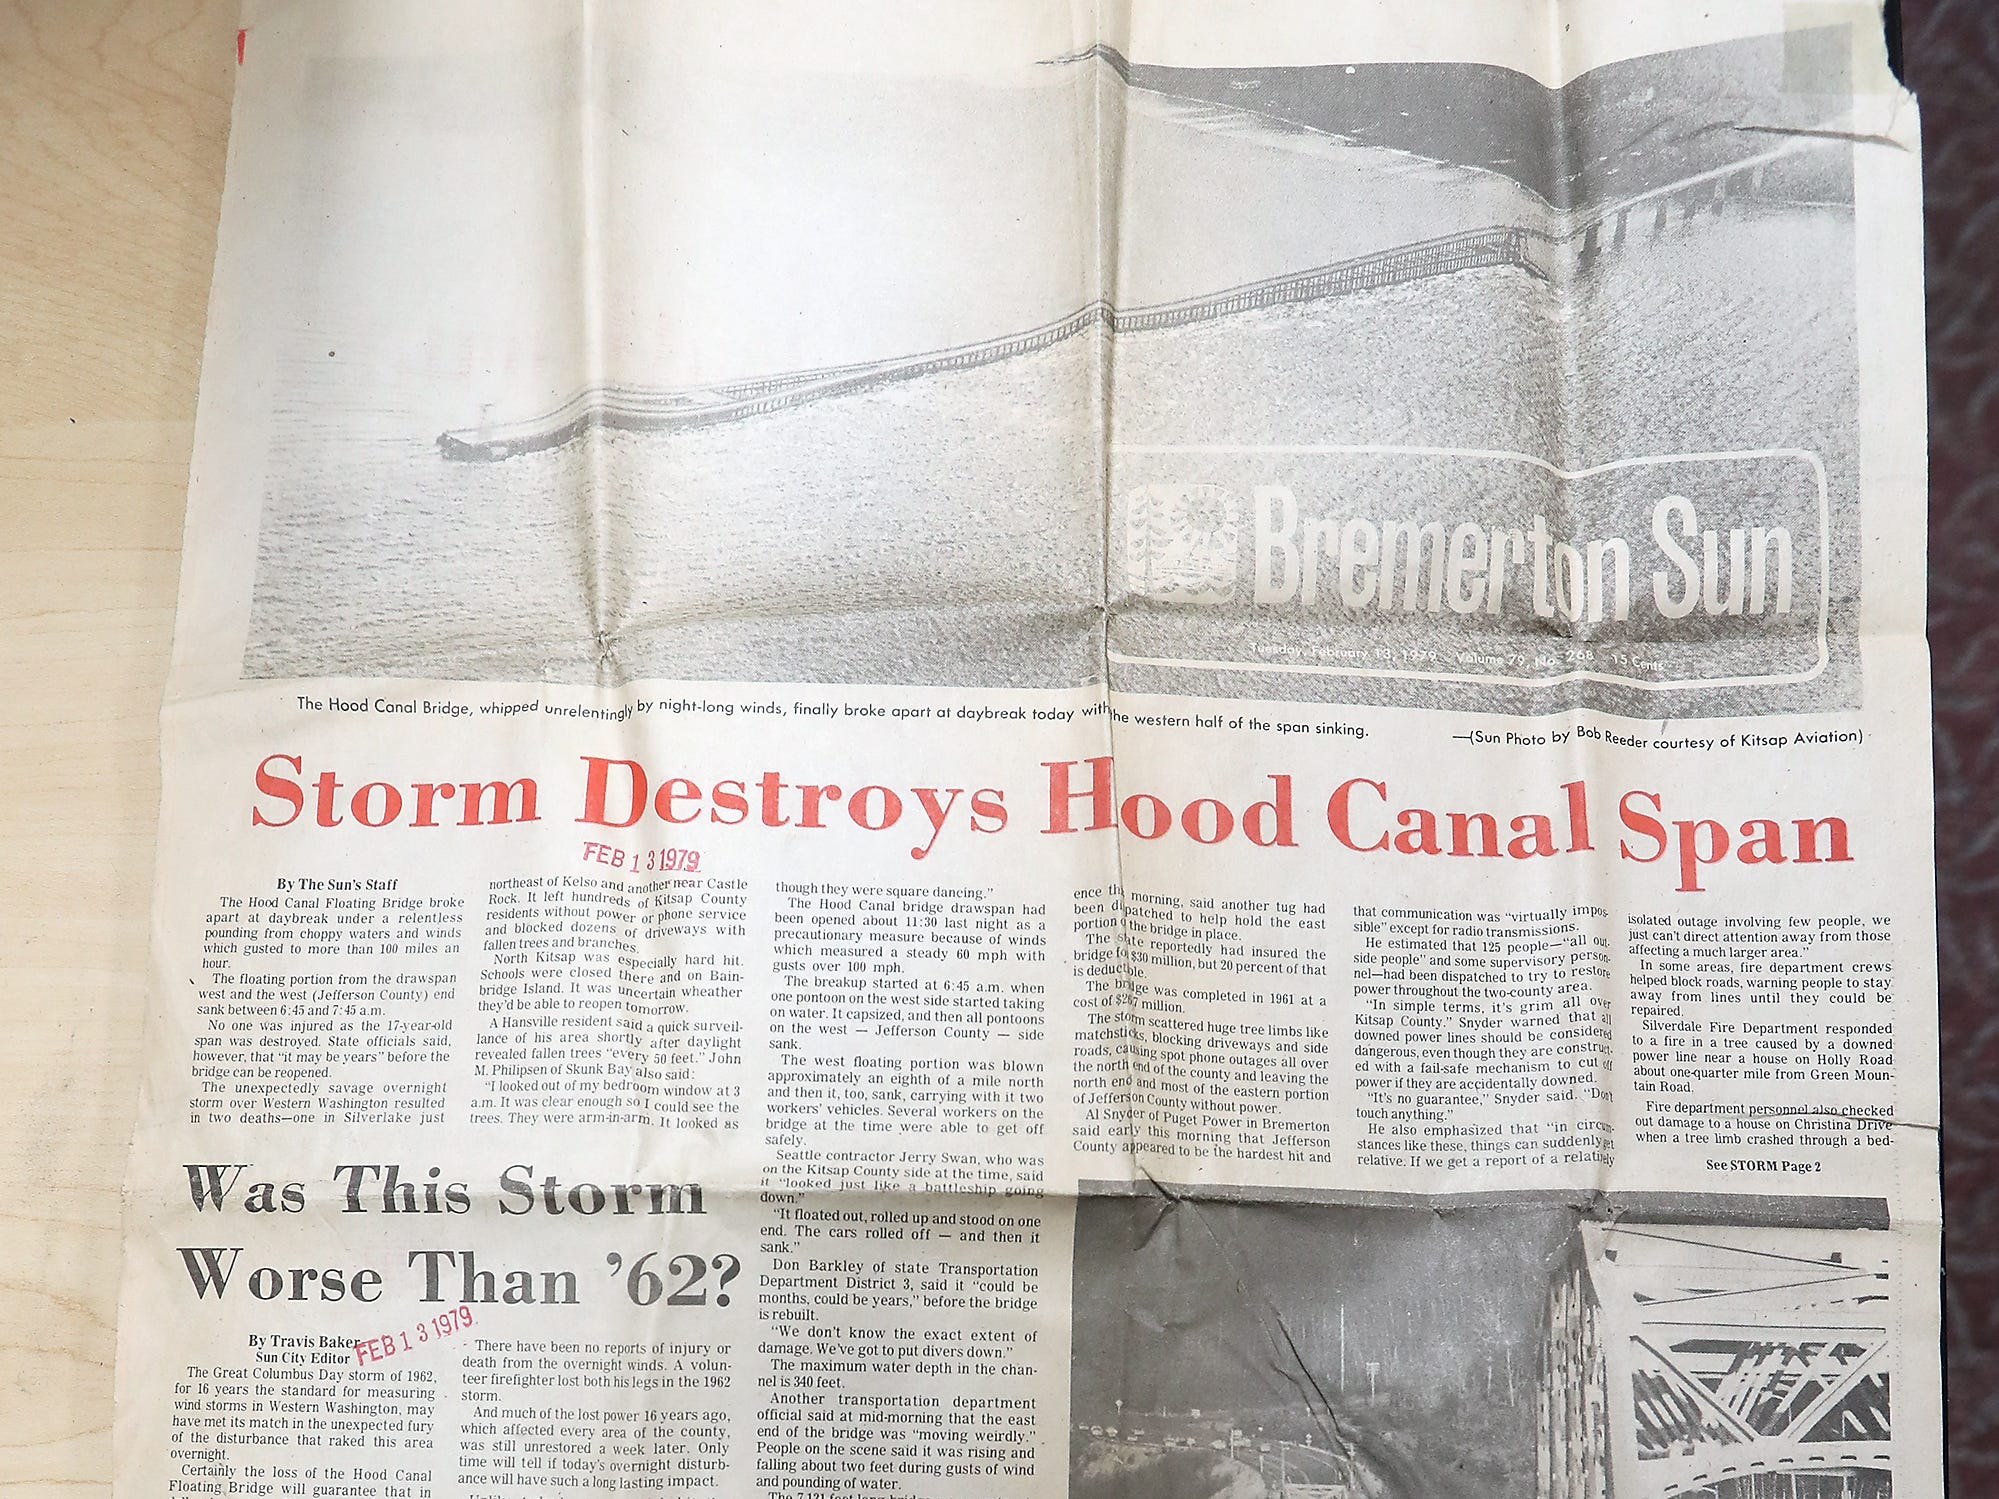 Feb. 13 1979 edition of the Bremerton Sun features articles about the storm that sunk the Hood Canal Bridge.